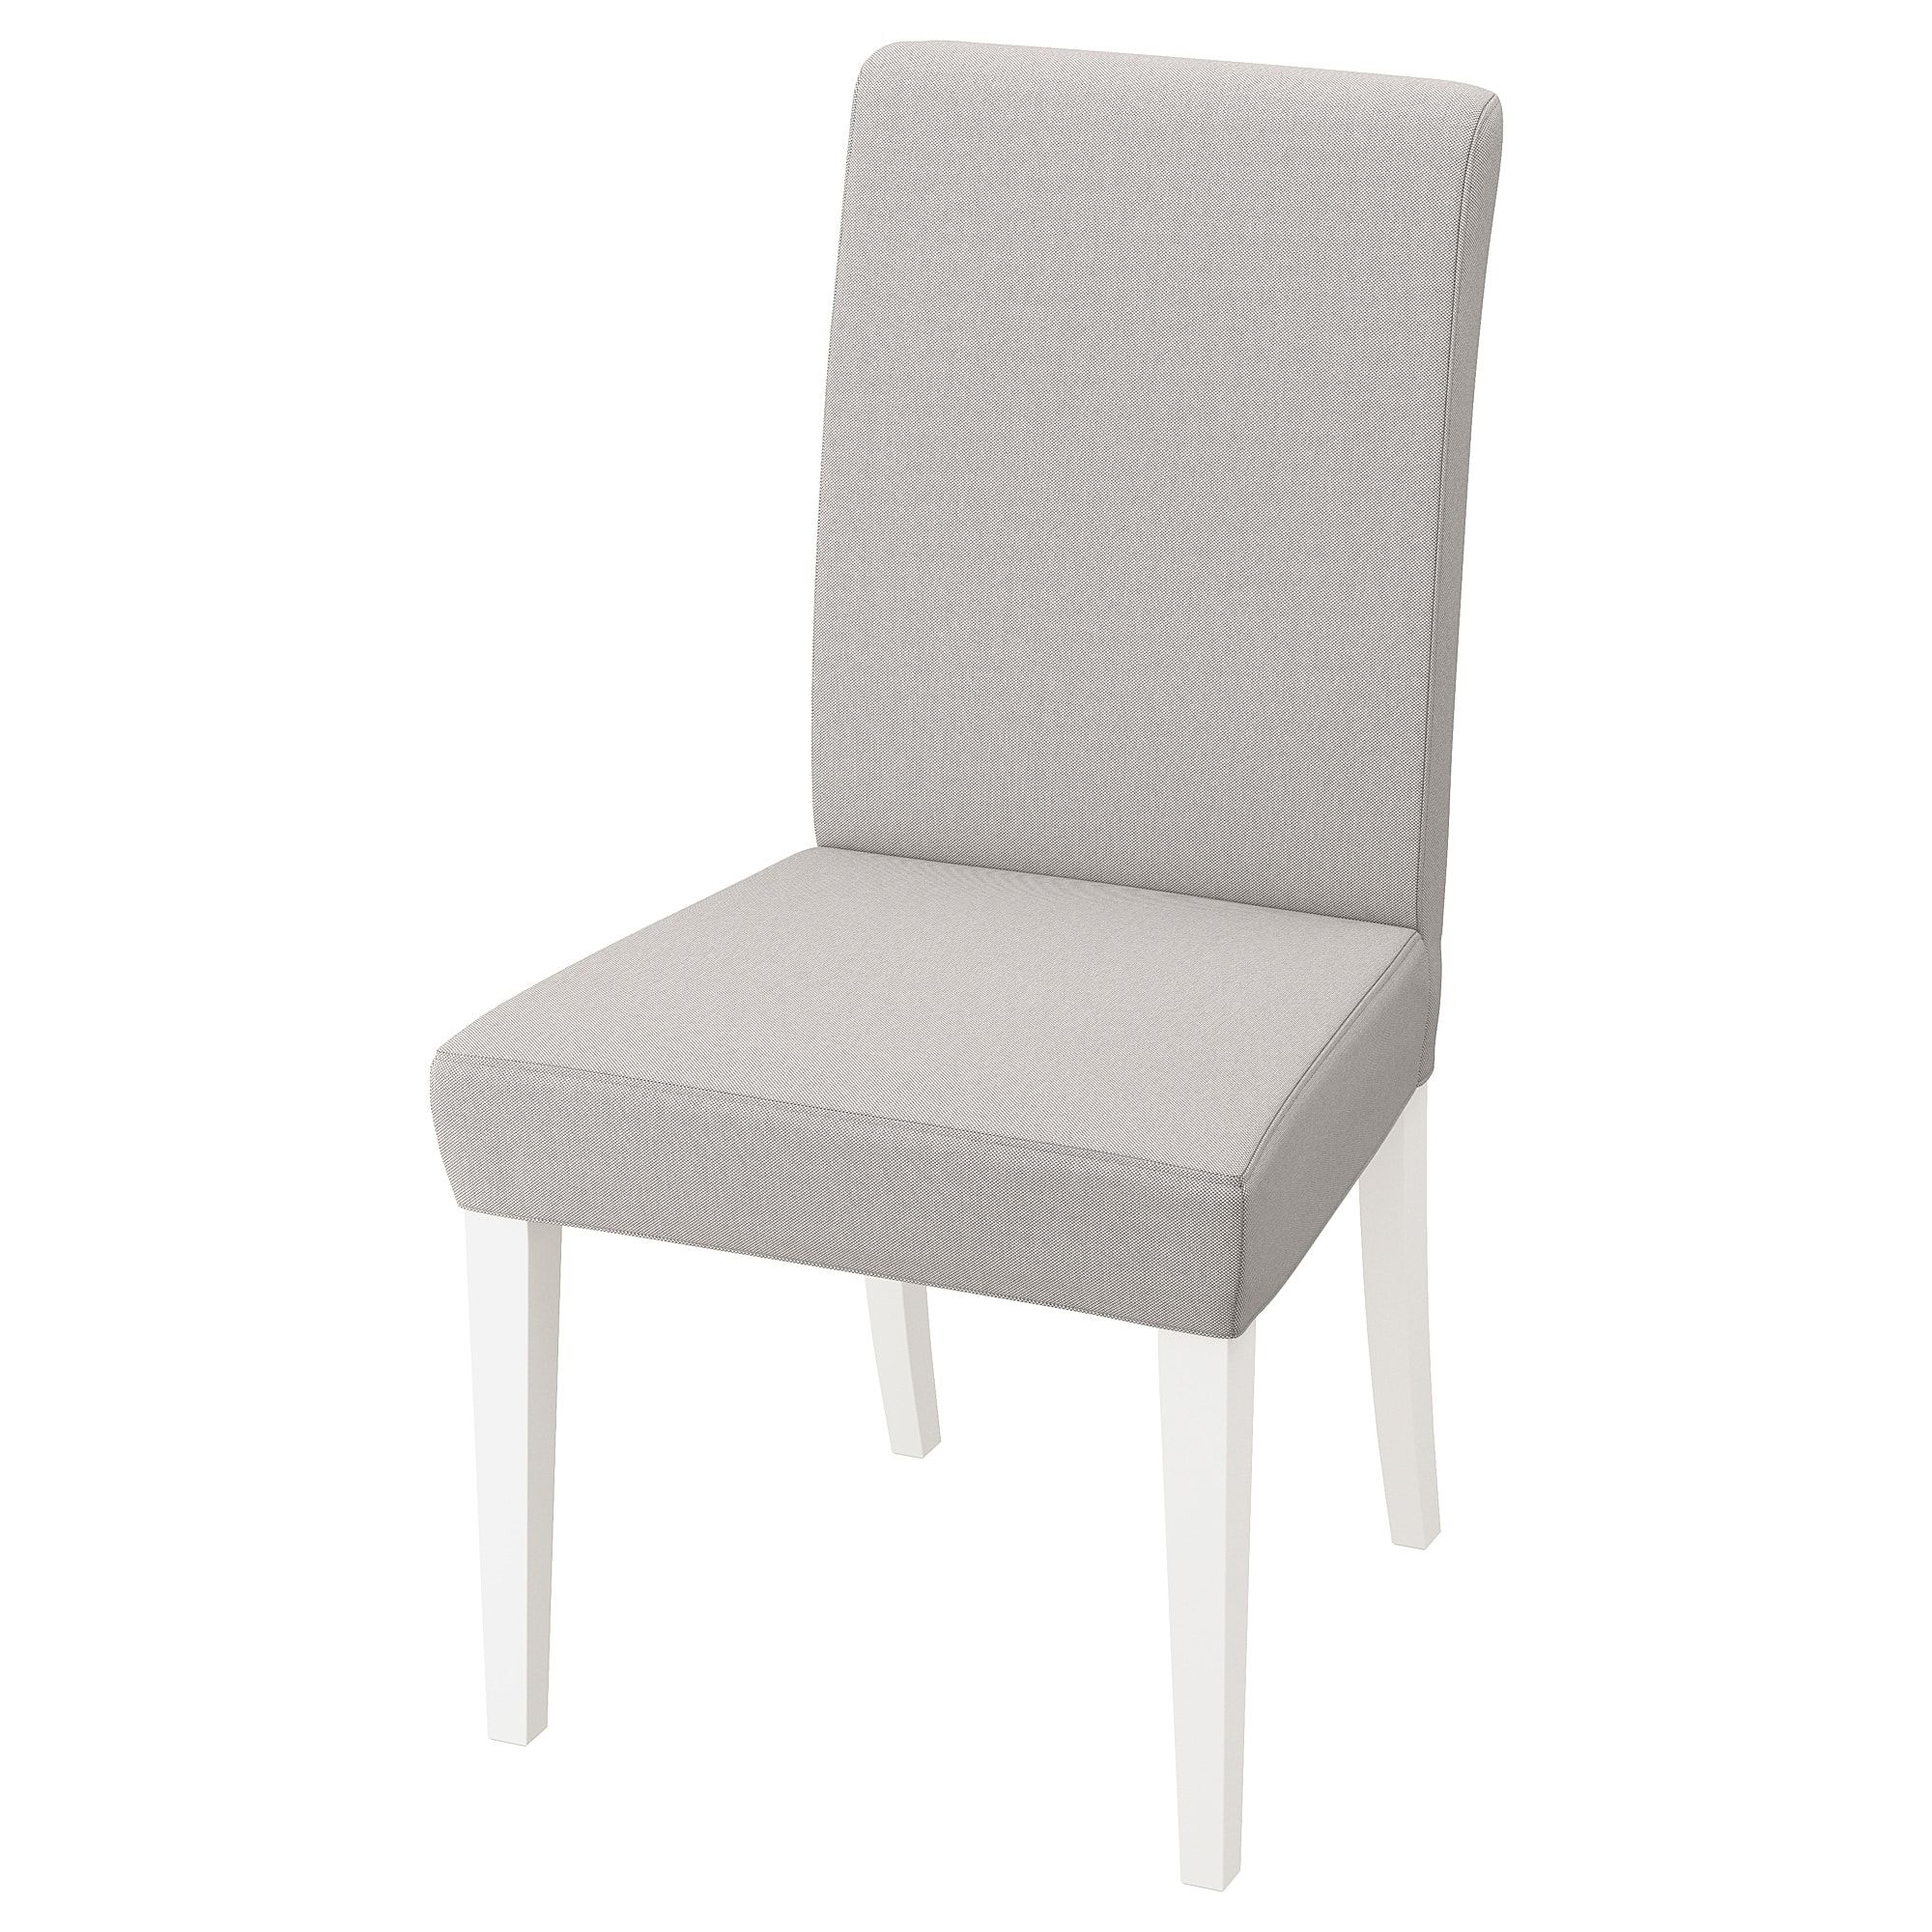 IKEA HENRIKSDAL Chair Chair, Upholstered chairs